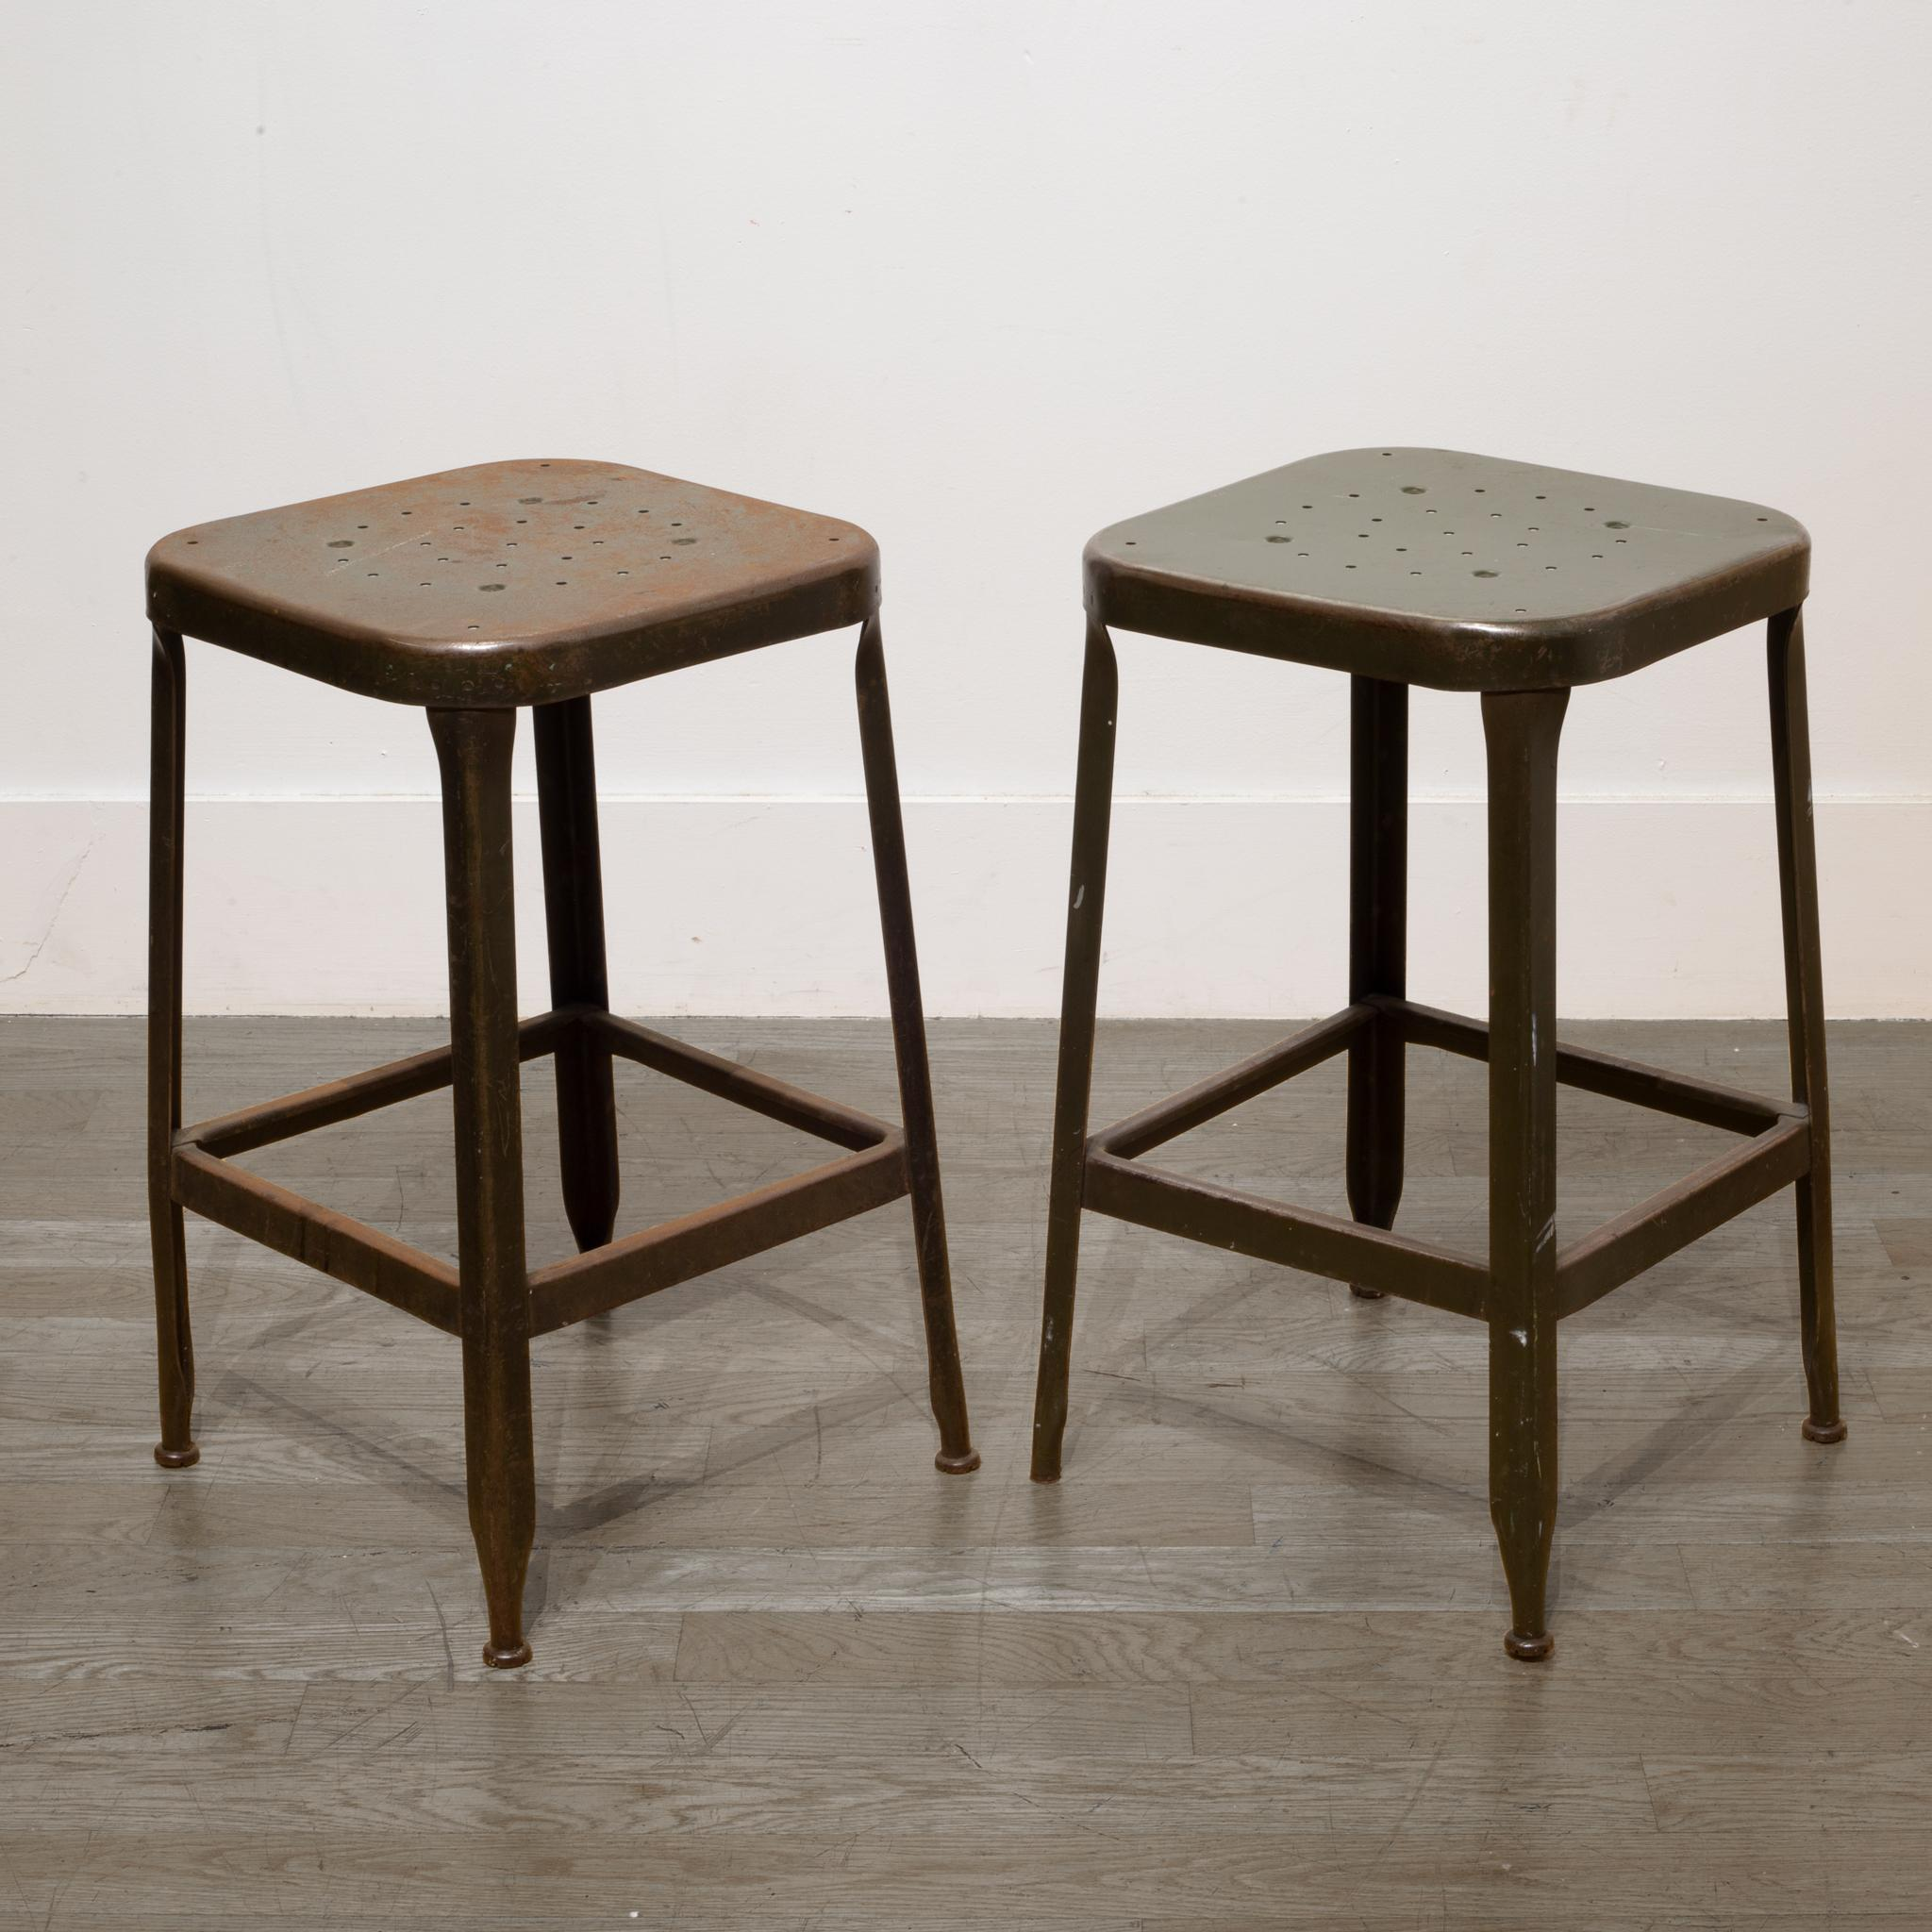 Awe Inspiring Pressed And Folded Steel Factory Stools Circa 1950 At 1Stdibs Machost Co Dining Chair Design Ideas Machostcouk